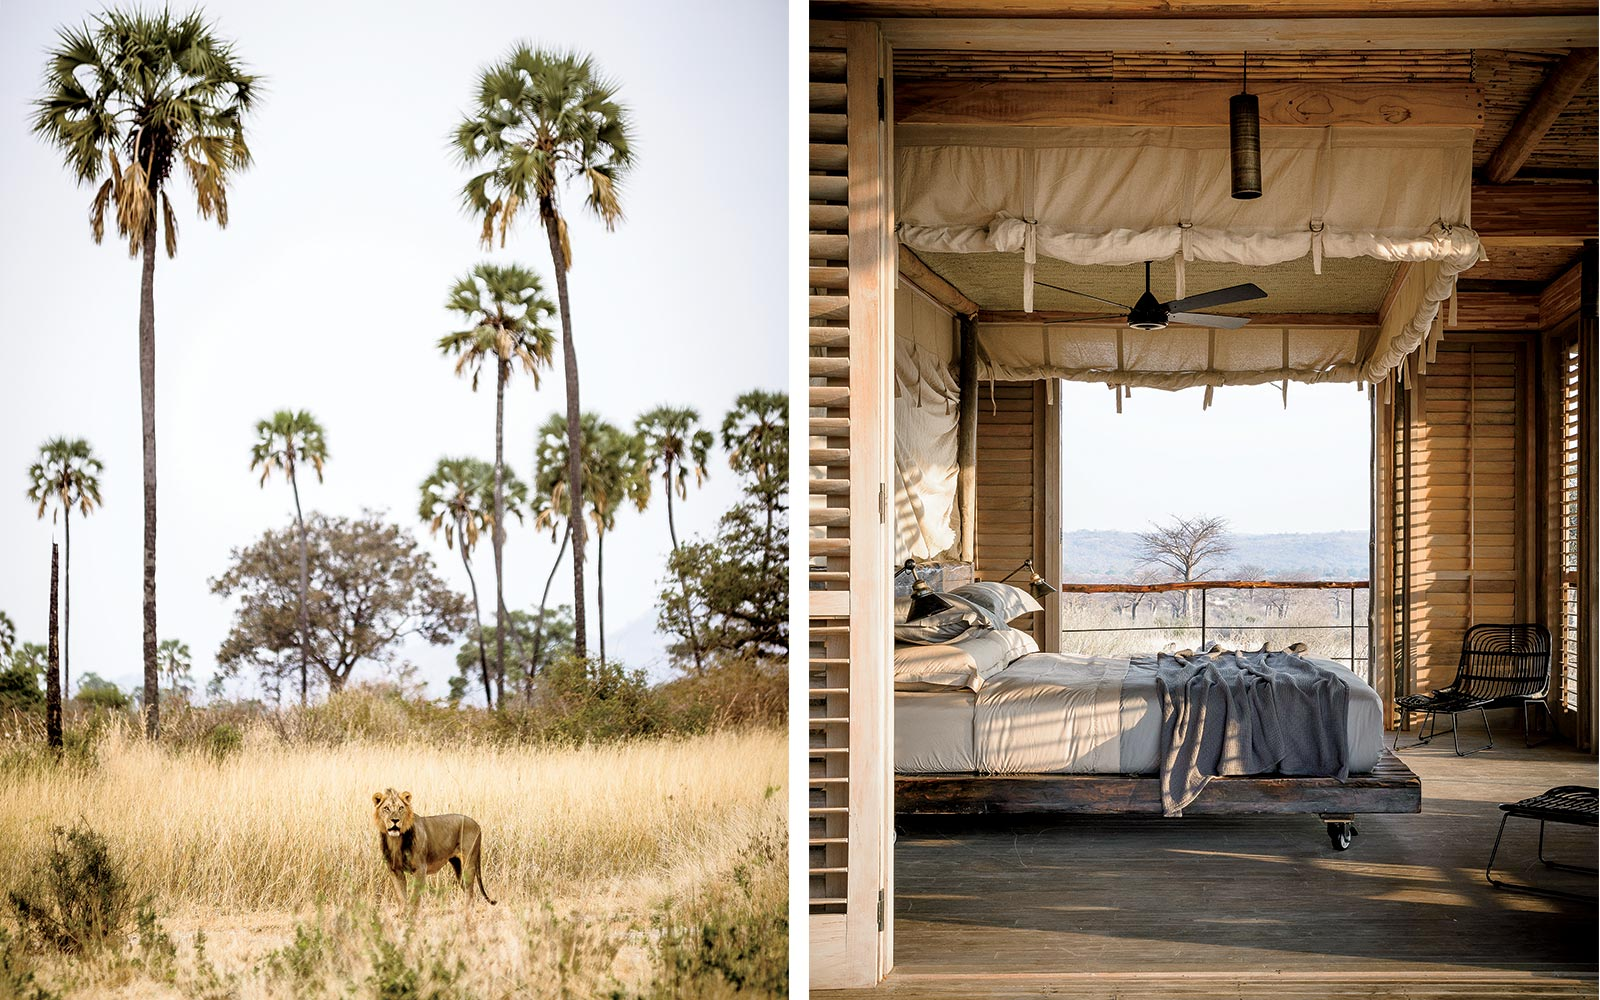 Lion in Ruaha National Park, and a room at the Asilia Jabali Ridge property